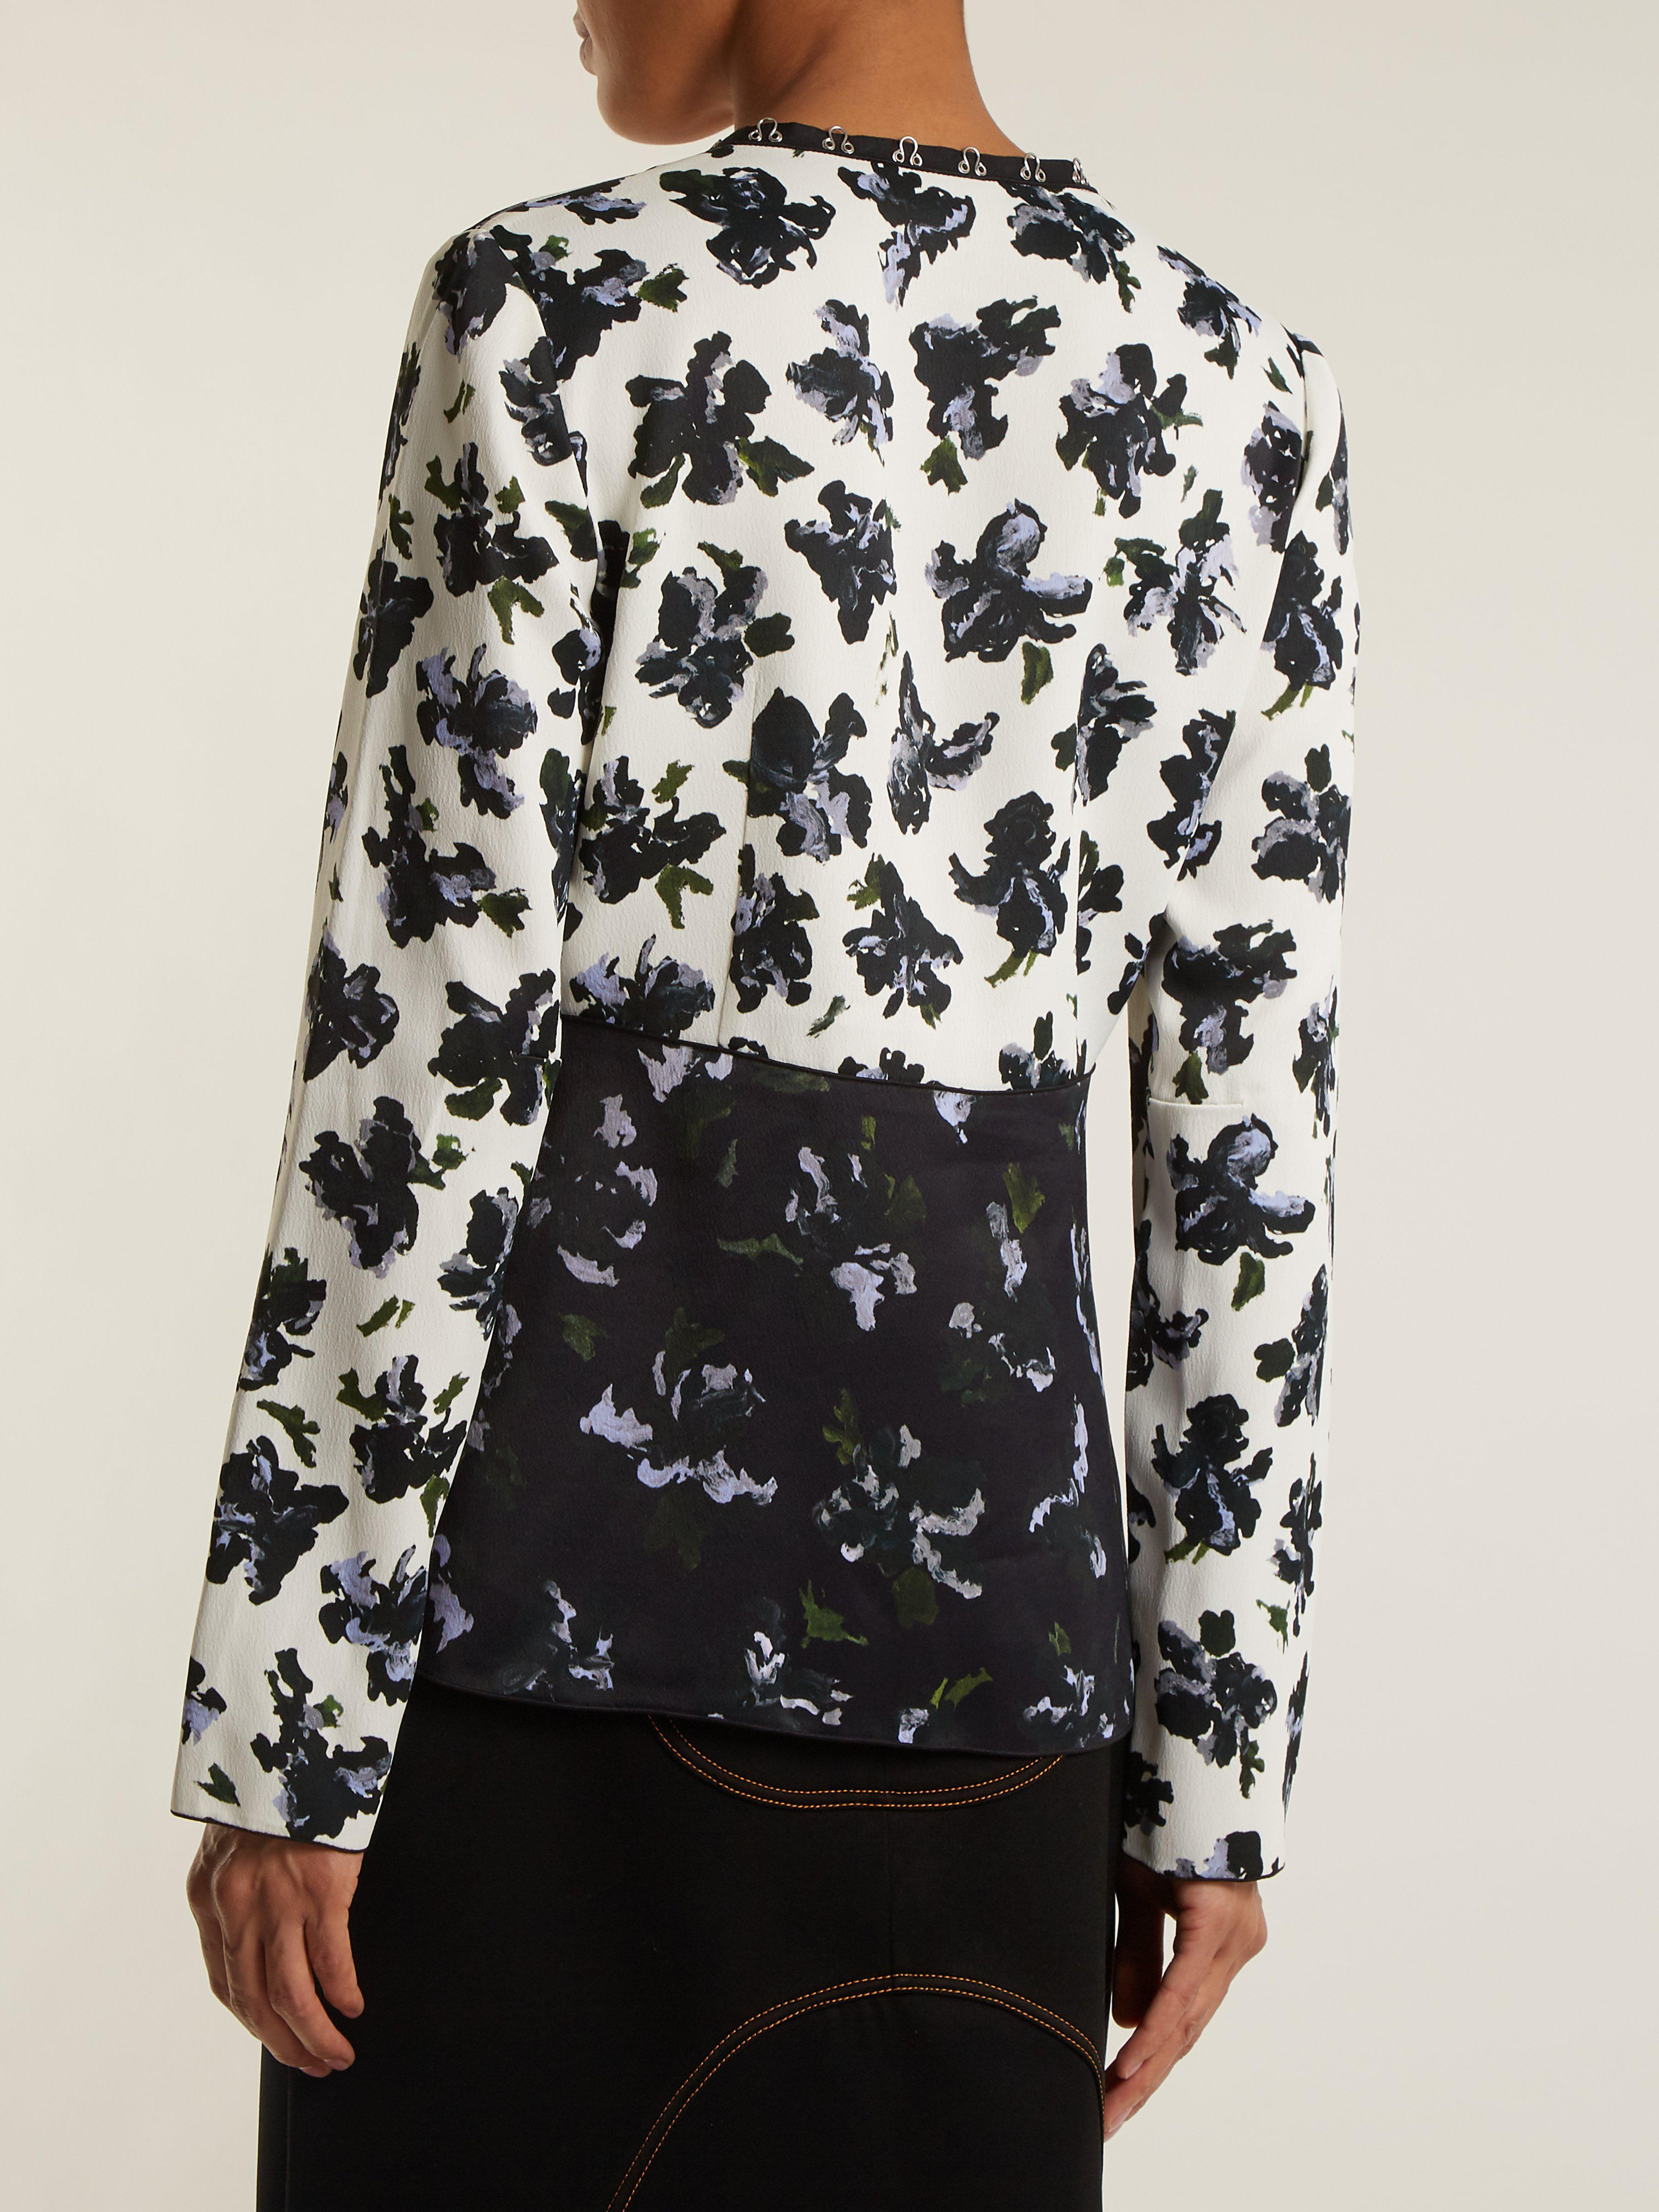 Proenza Schouler Synthetic Floral Print V Neck Blouse in Black Blue (Black) - Save 60%